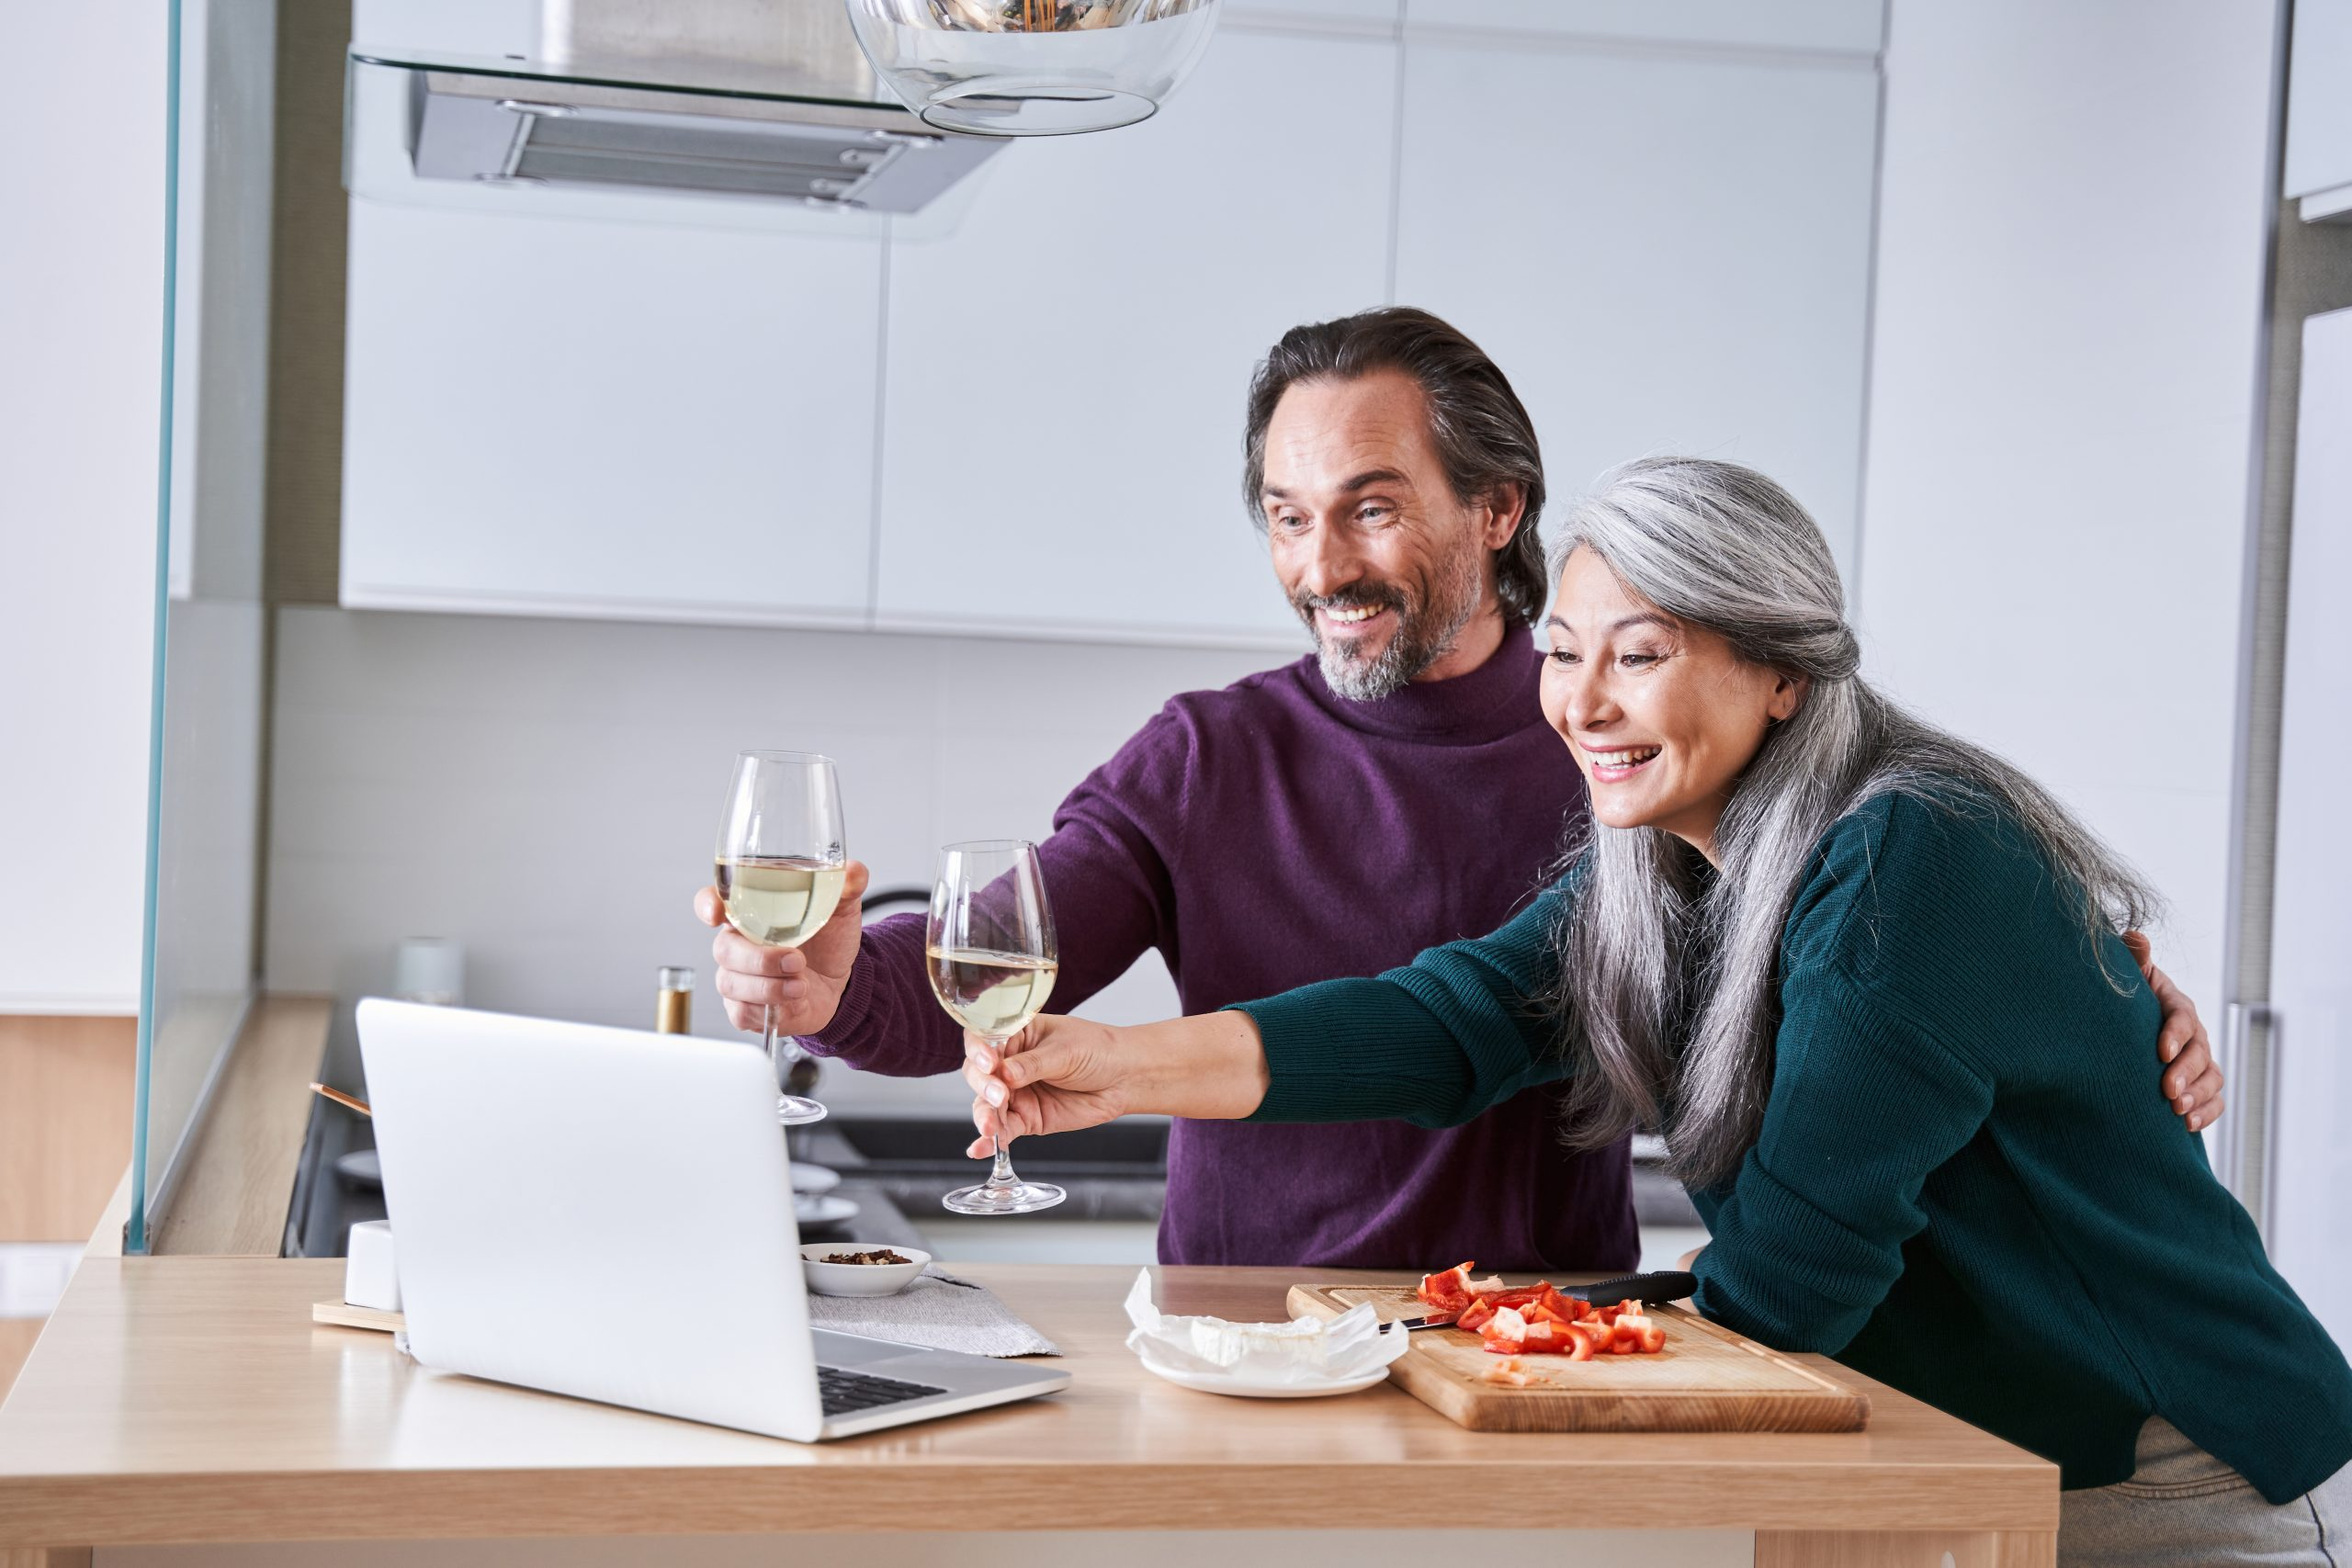 Friends celebrating with drinks with online chat on laptop